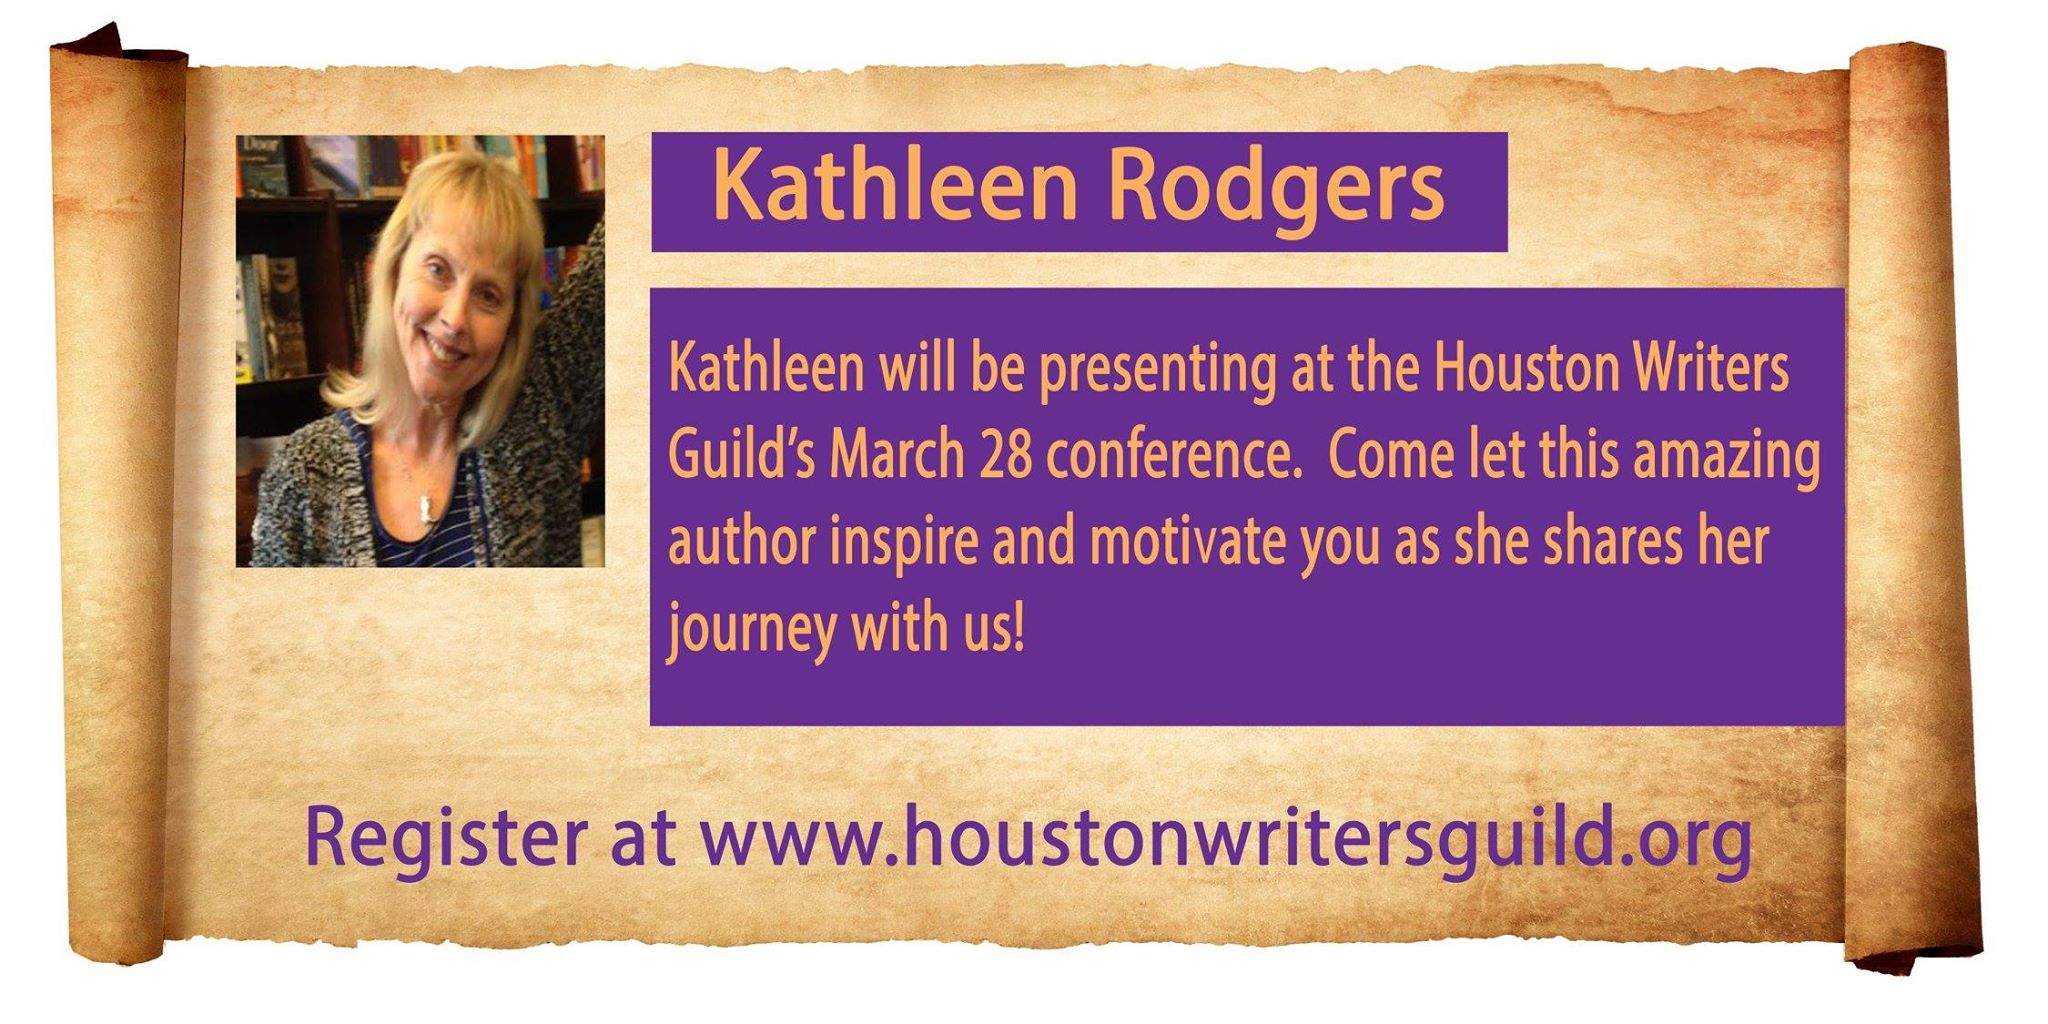 Houston Writers Guild announcement for Kathleenmrodgers   workshop March 28